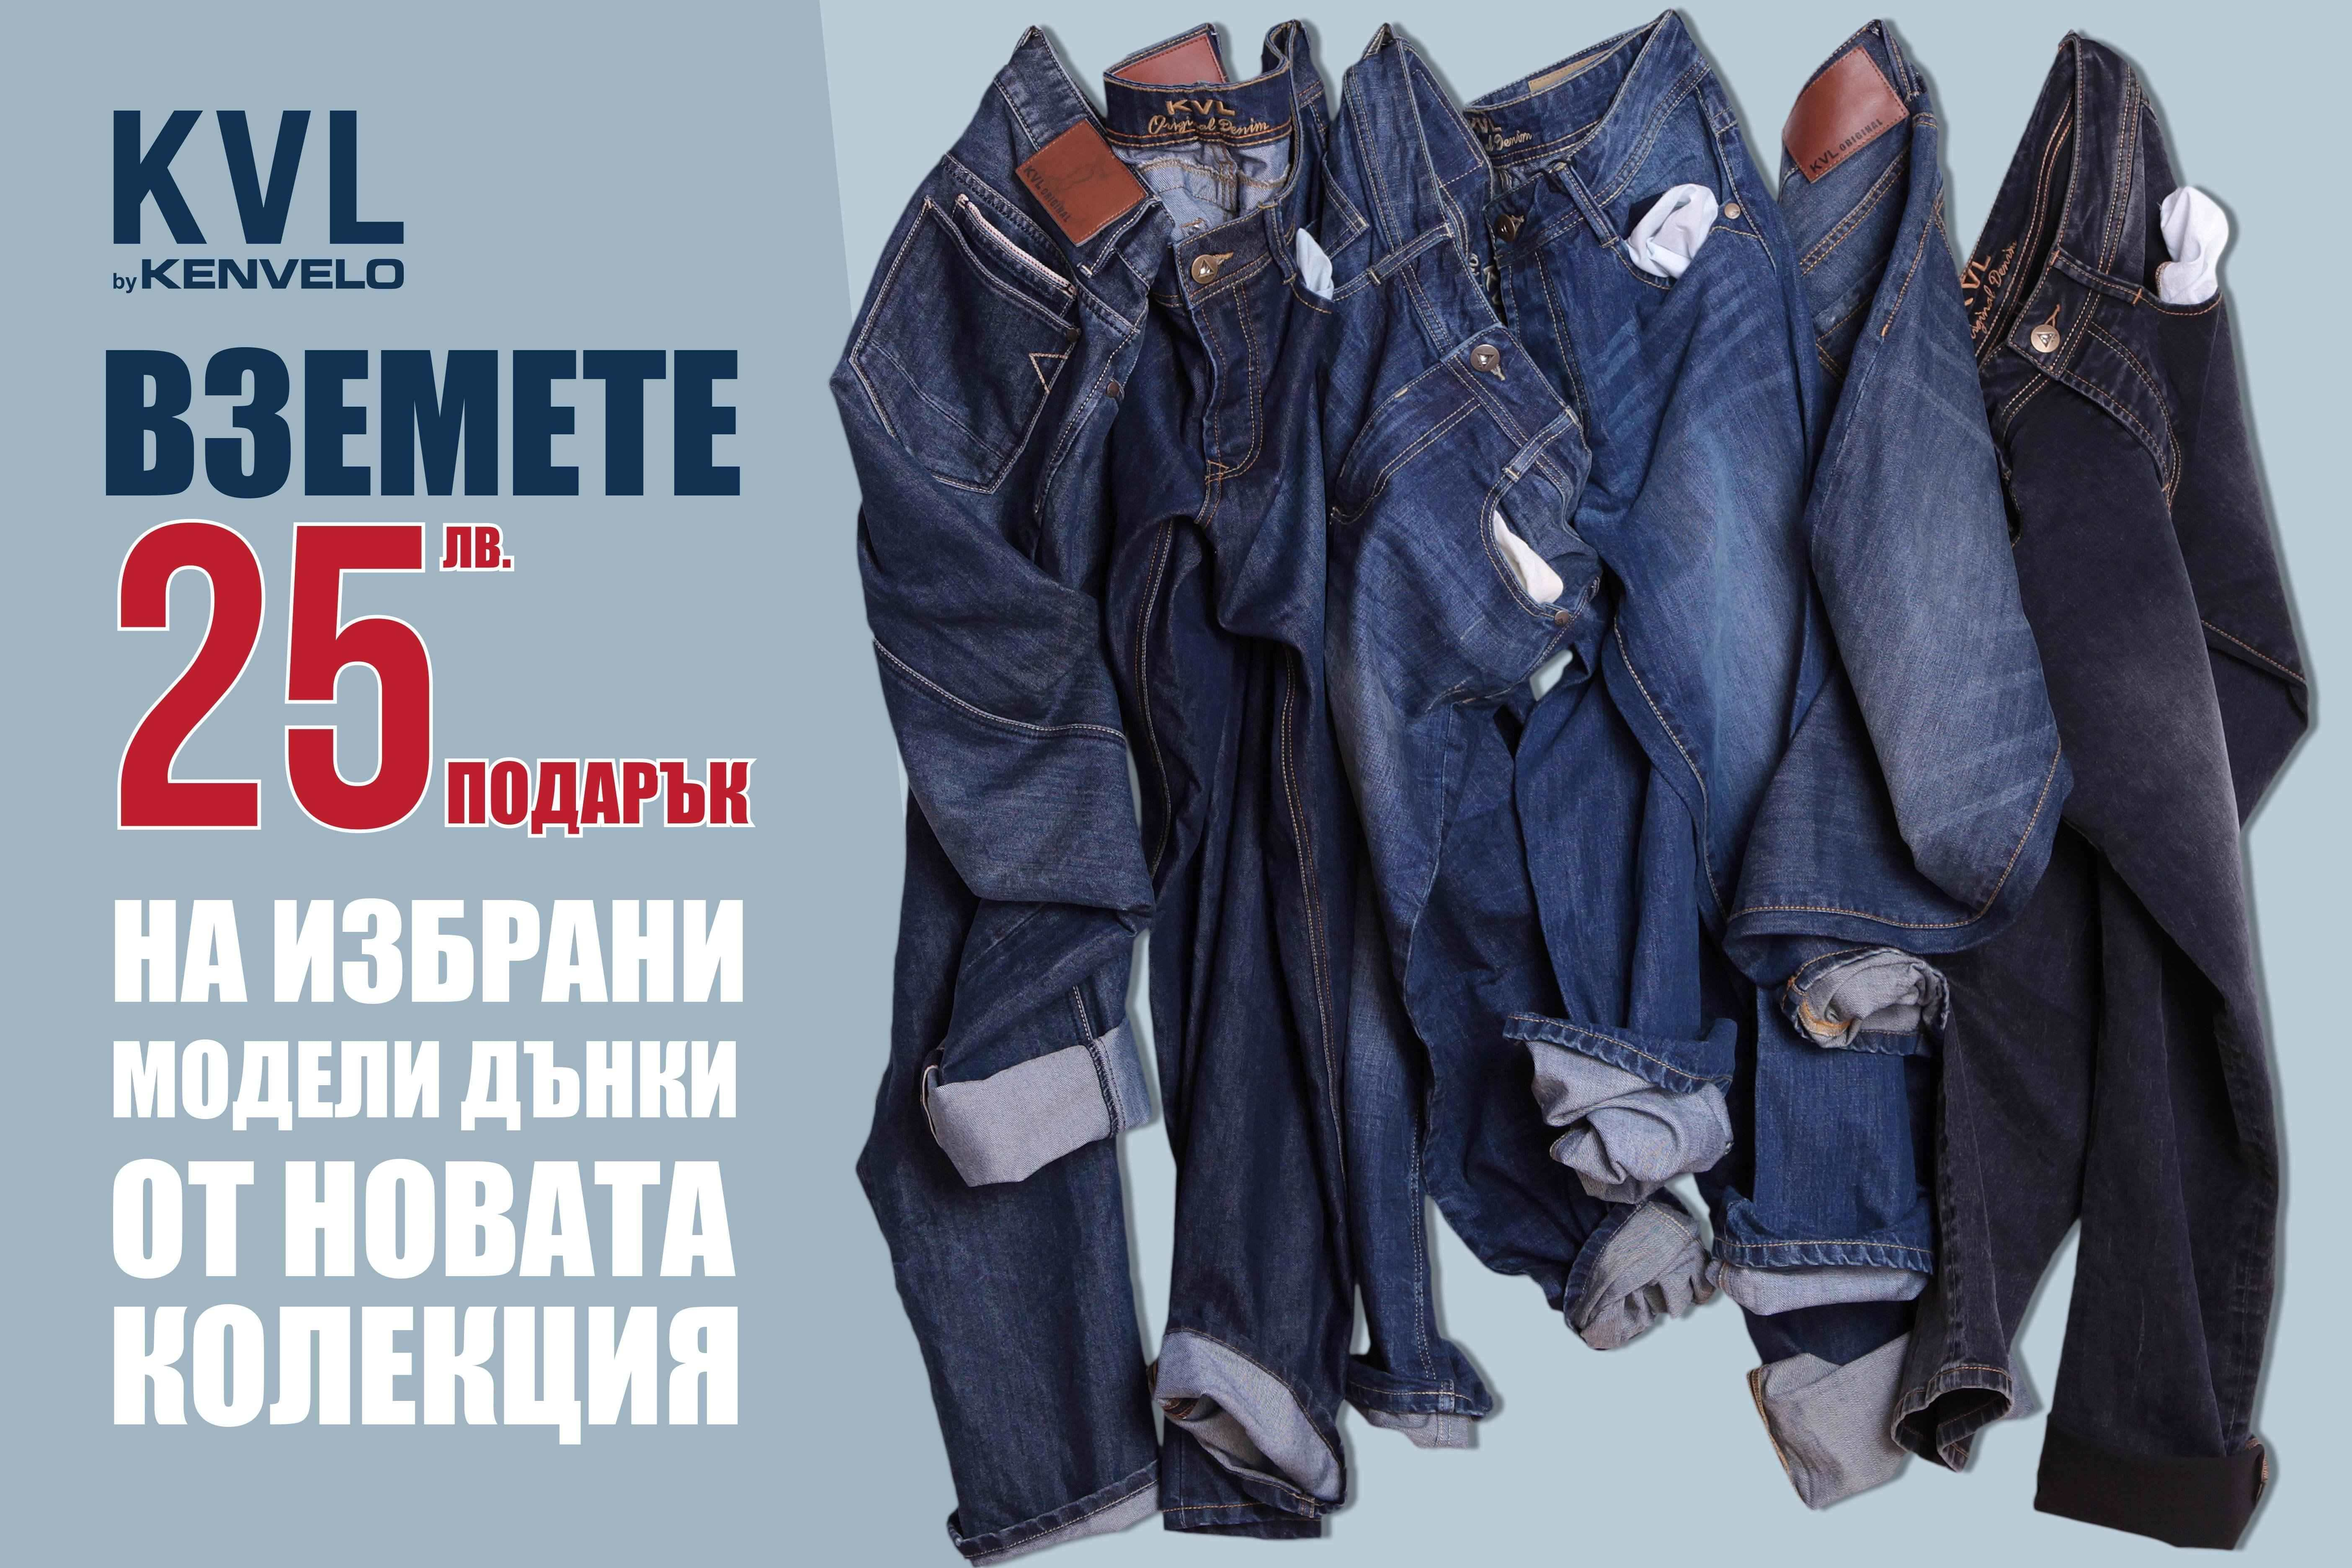 4ad44a83a0e Take 25 BGN gift of selected jeans models from the new collection in Kenvelo